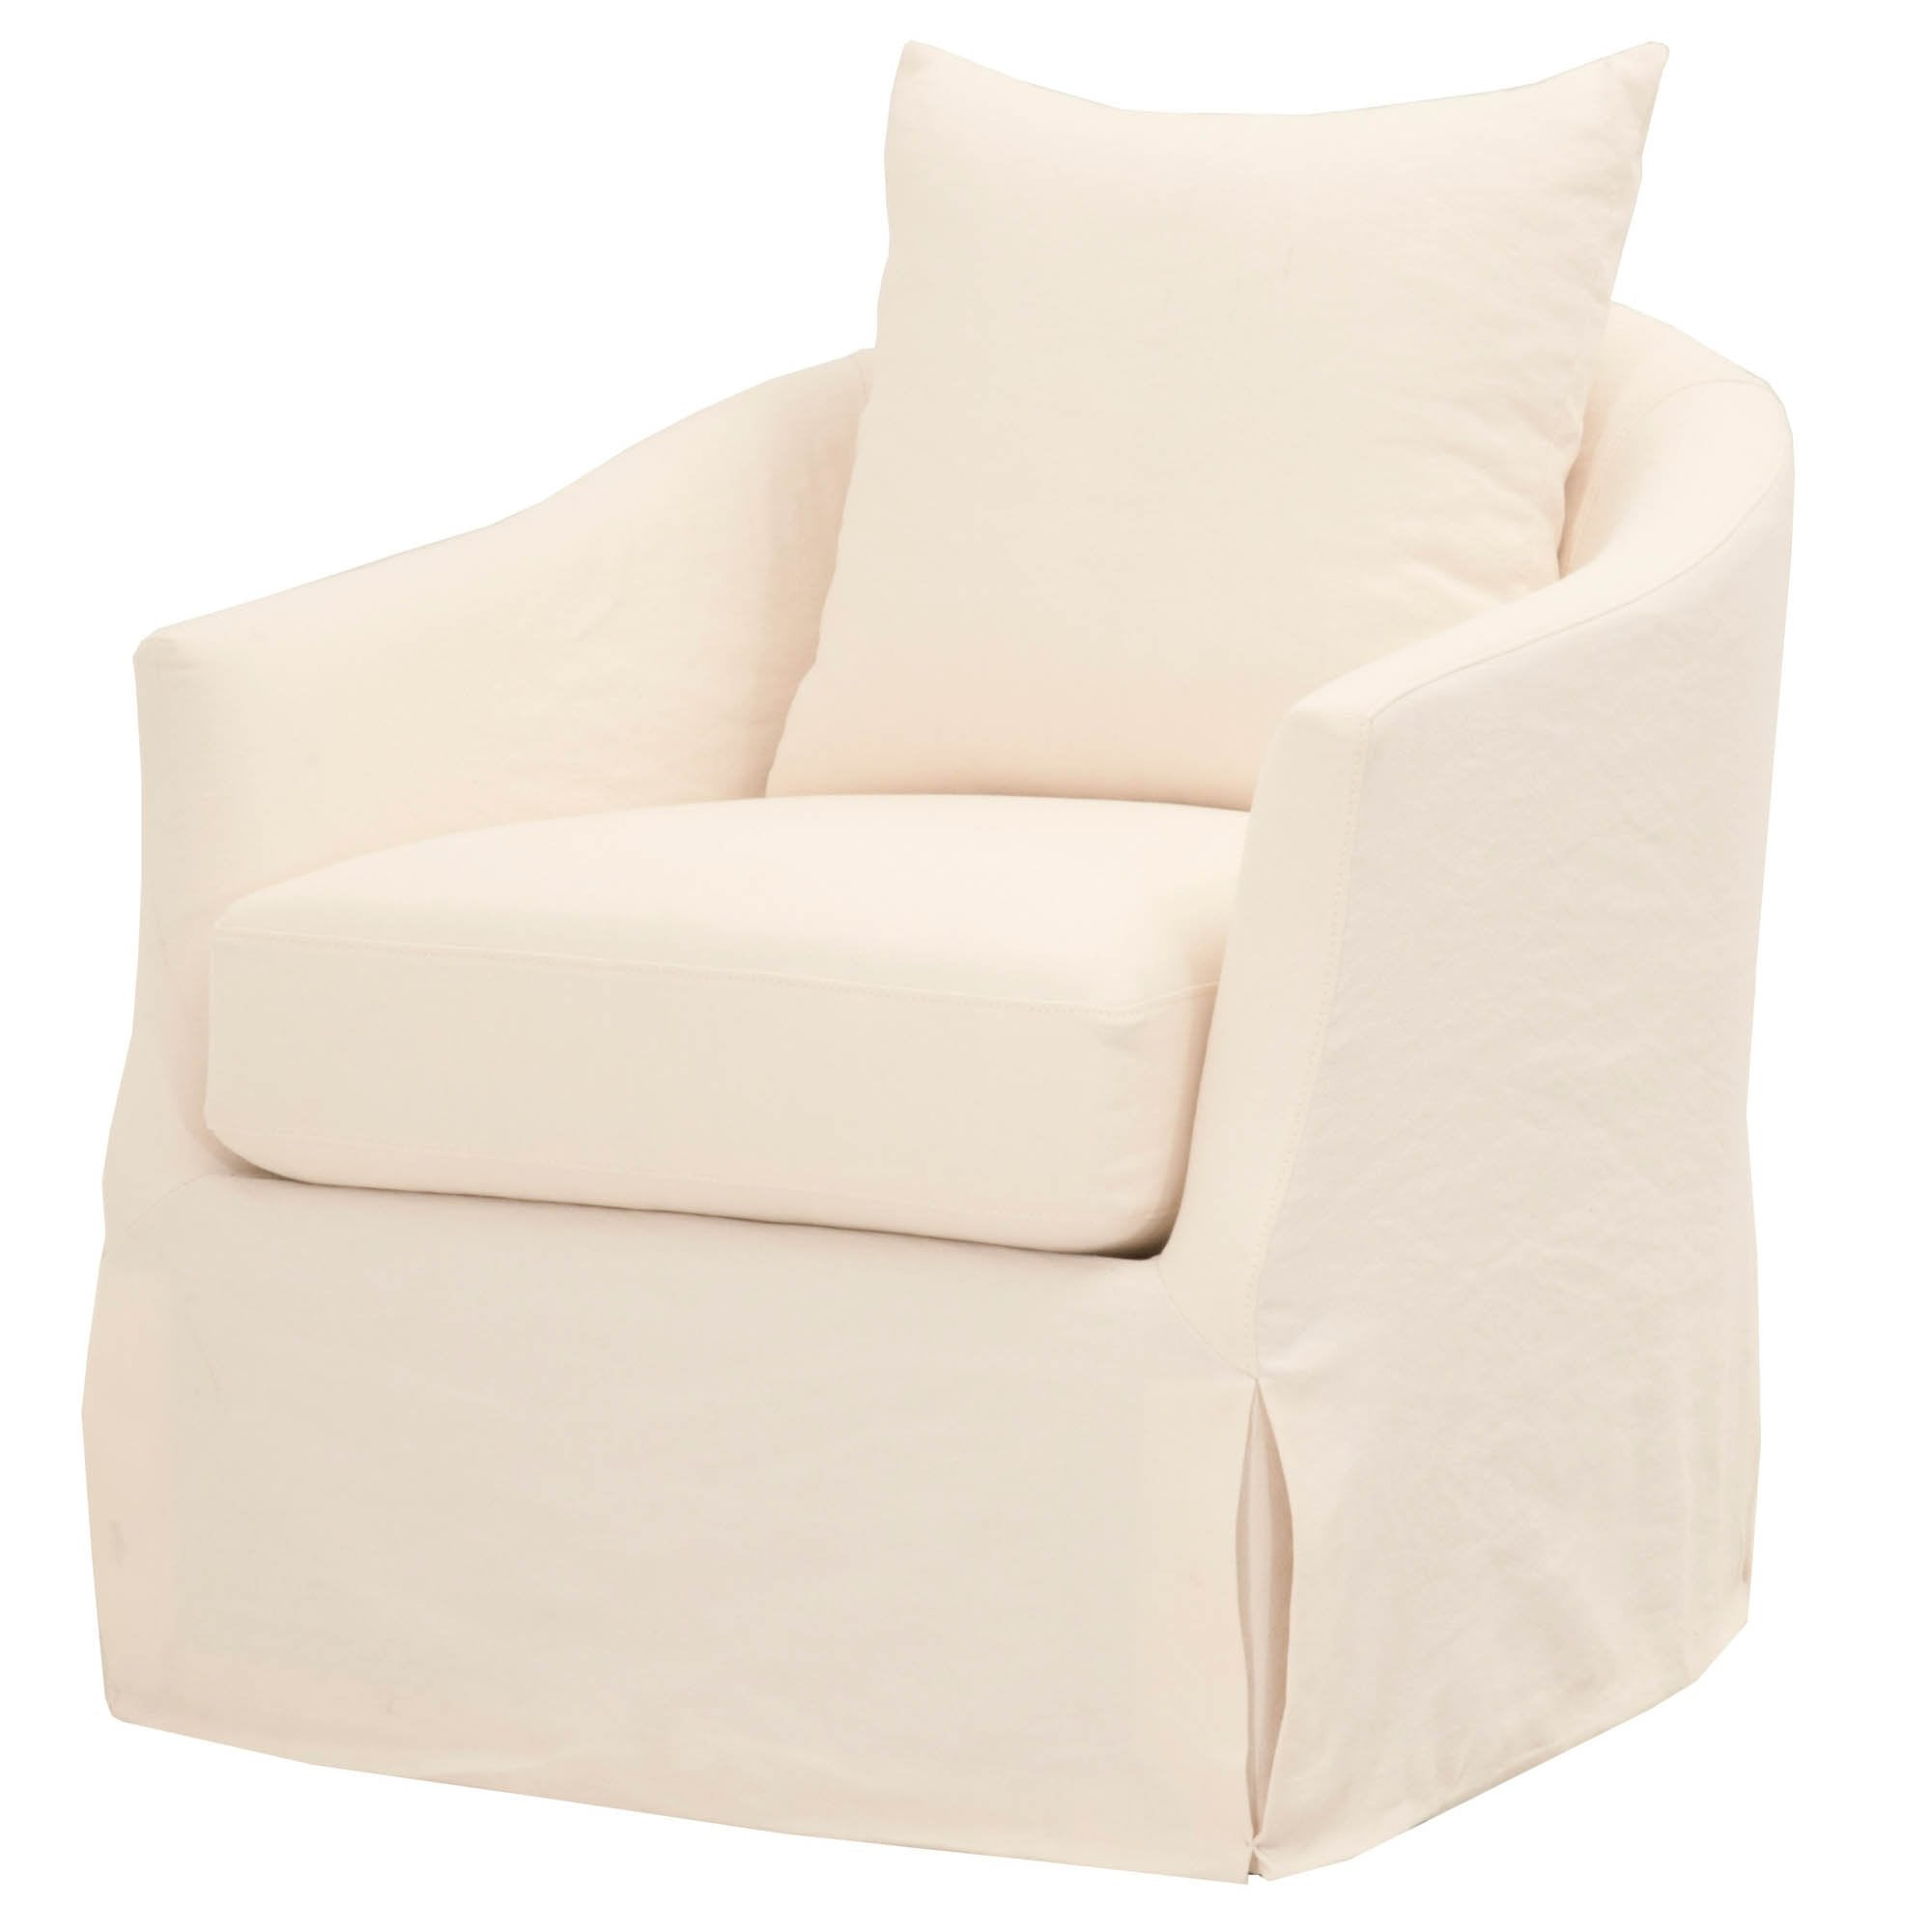 Magnificent Faye Slipcover Swivel Club Chair In Cream Crepe Fabric Theyellowbook Wood Chair Design Ideas Theyellowbookinfo